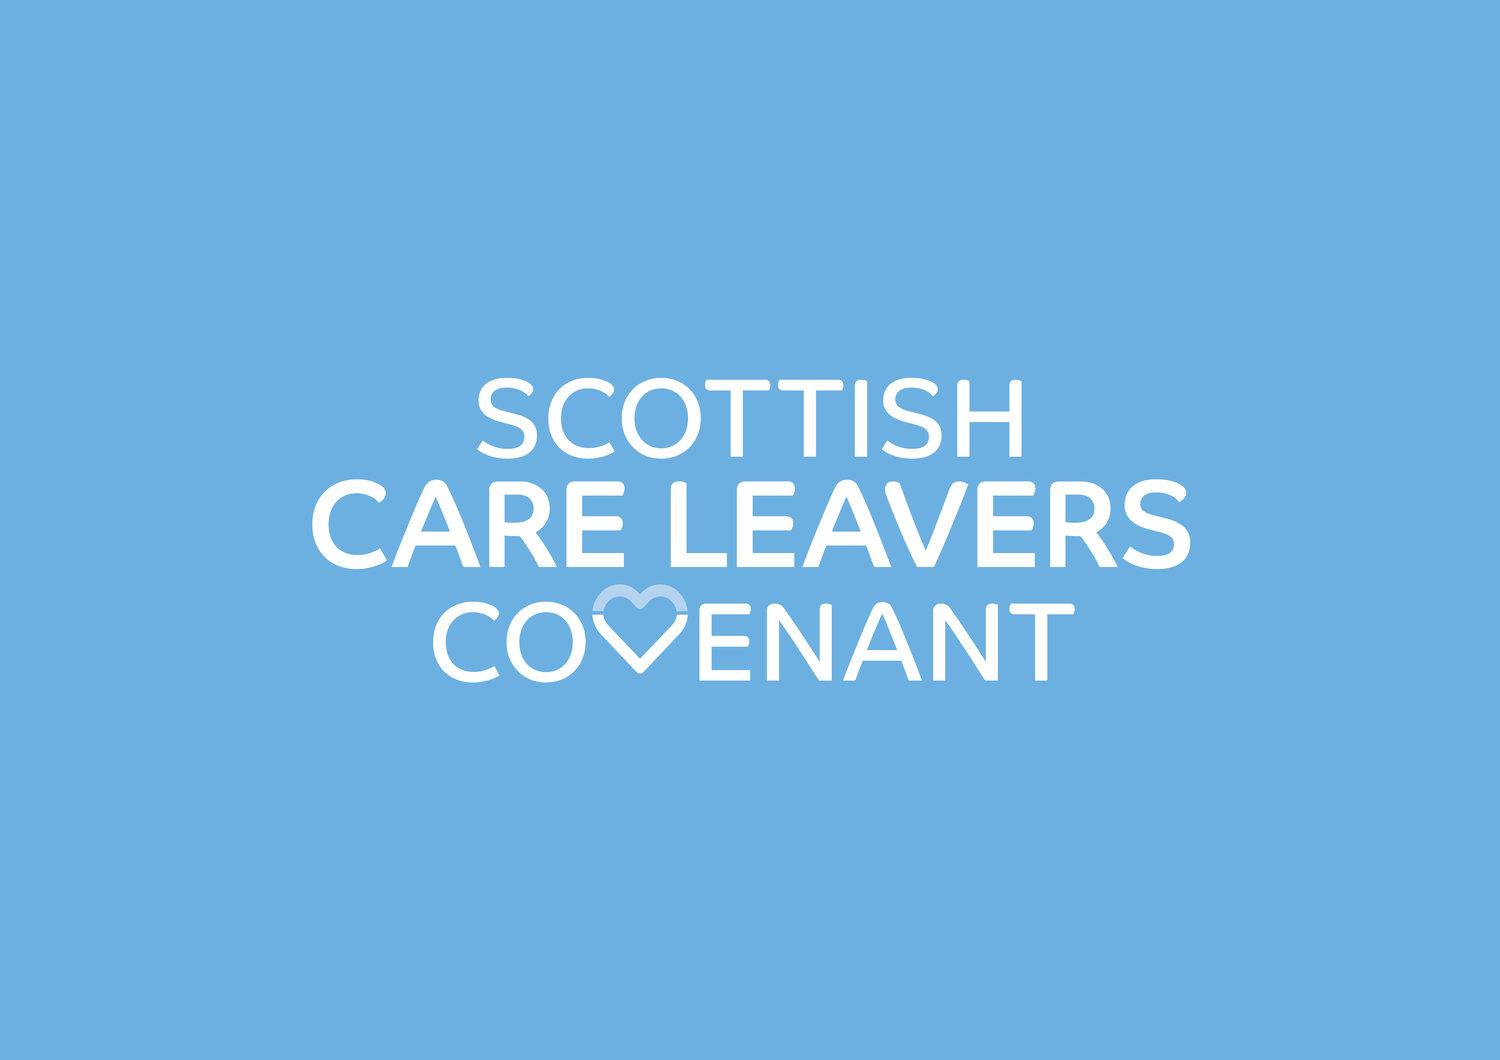 Scottish Care Leavers Covenant